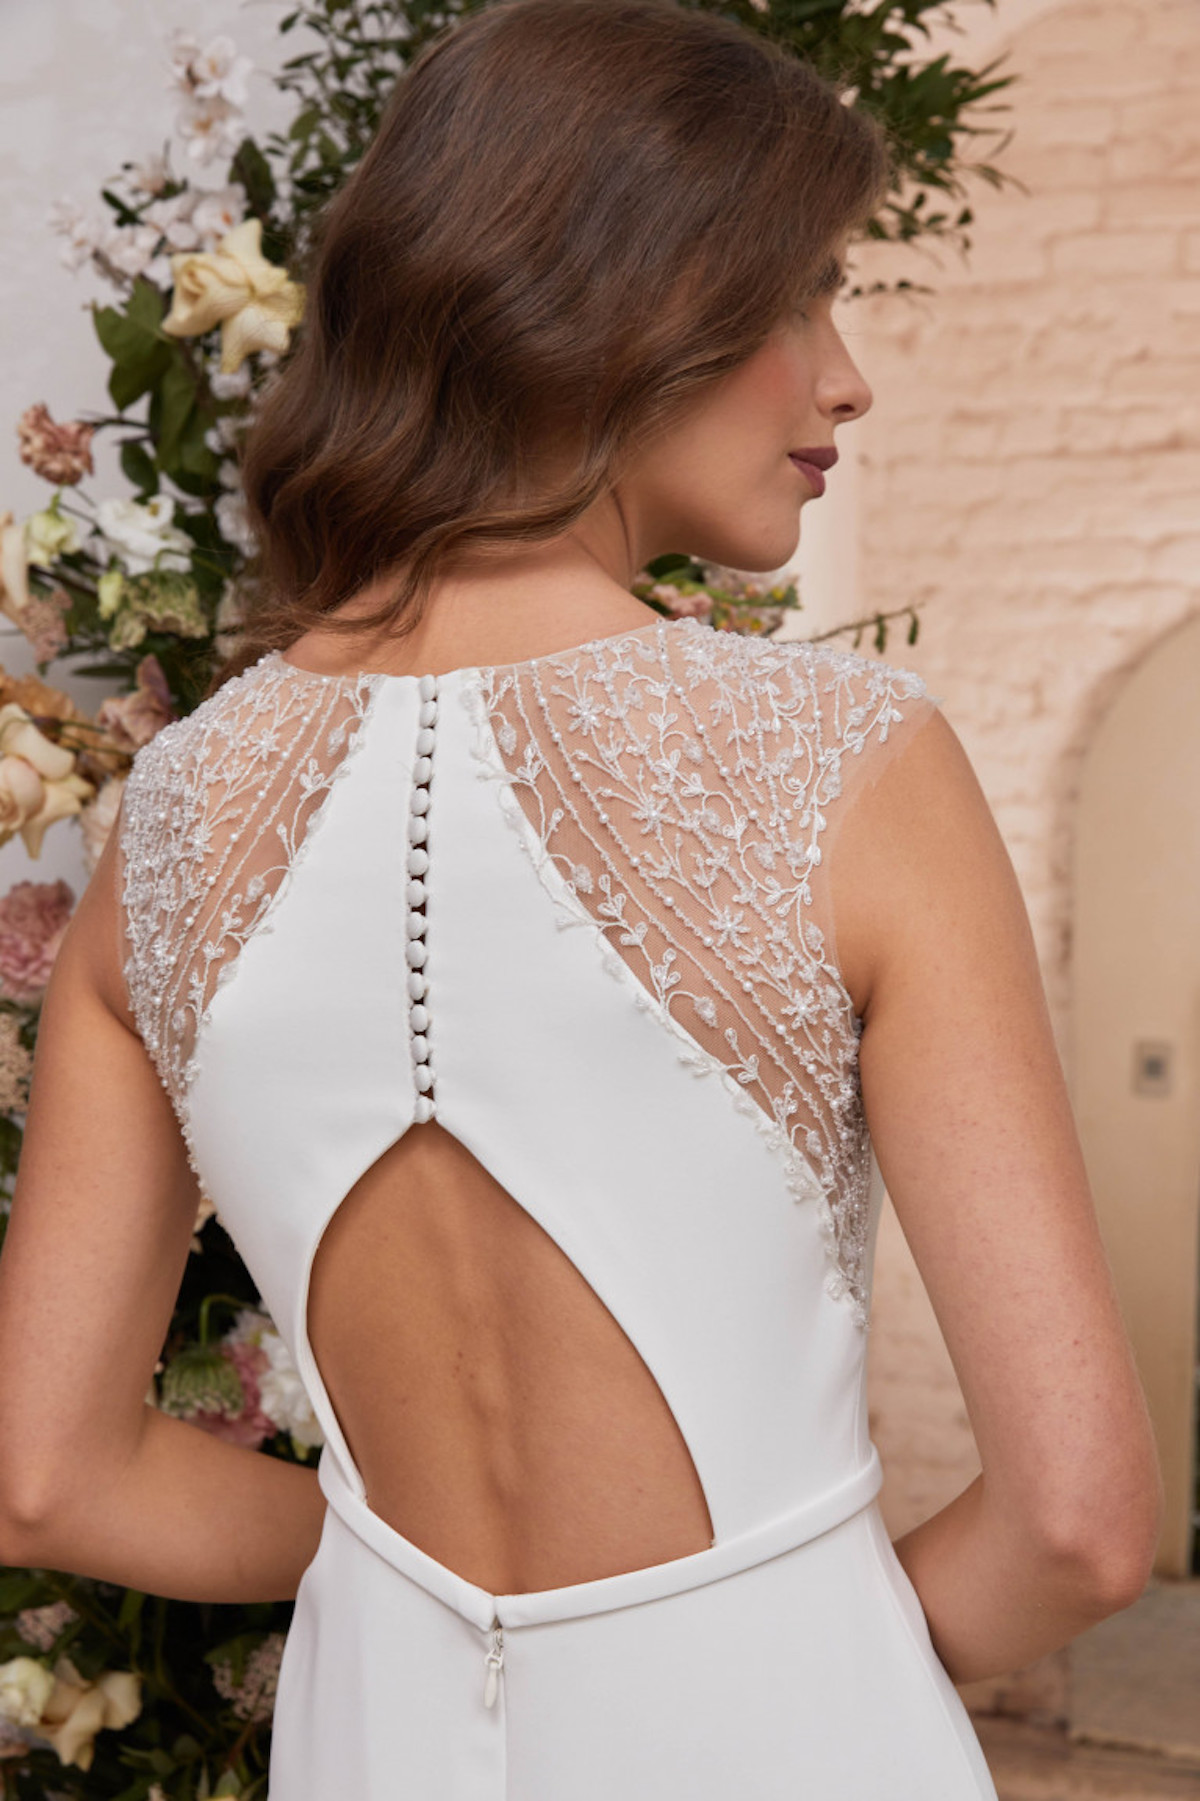 Bridal gown with open back